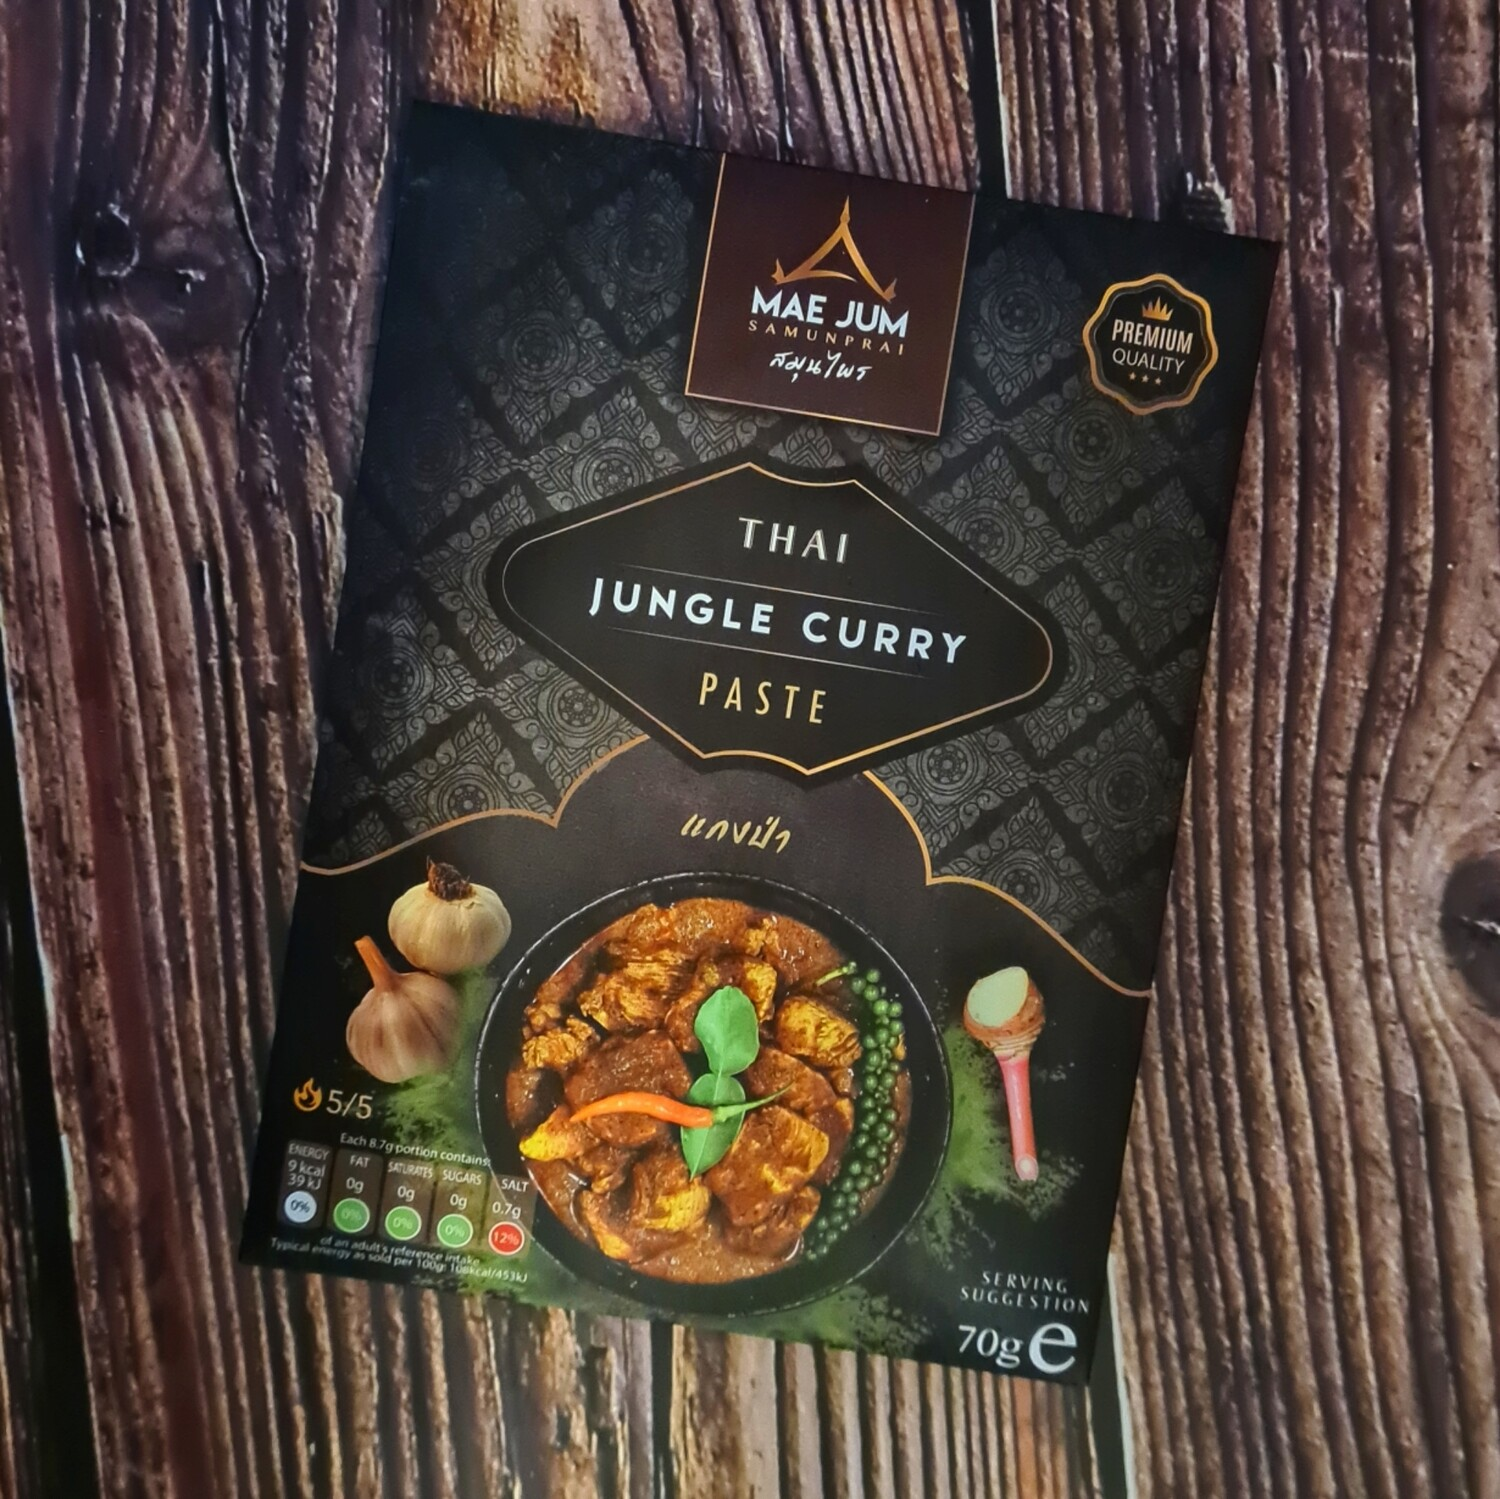 Mae Jum Thai Jungle Curry Paste